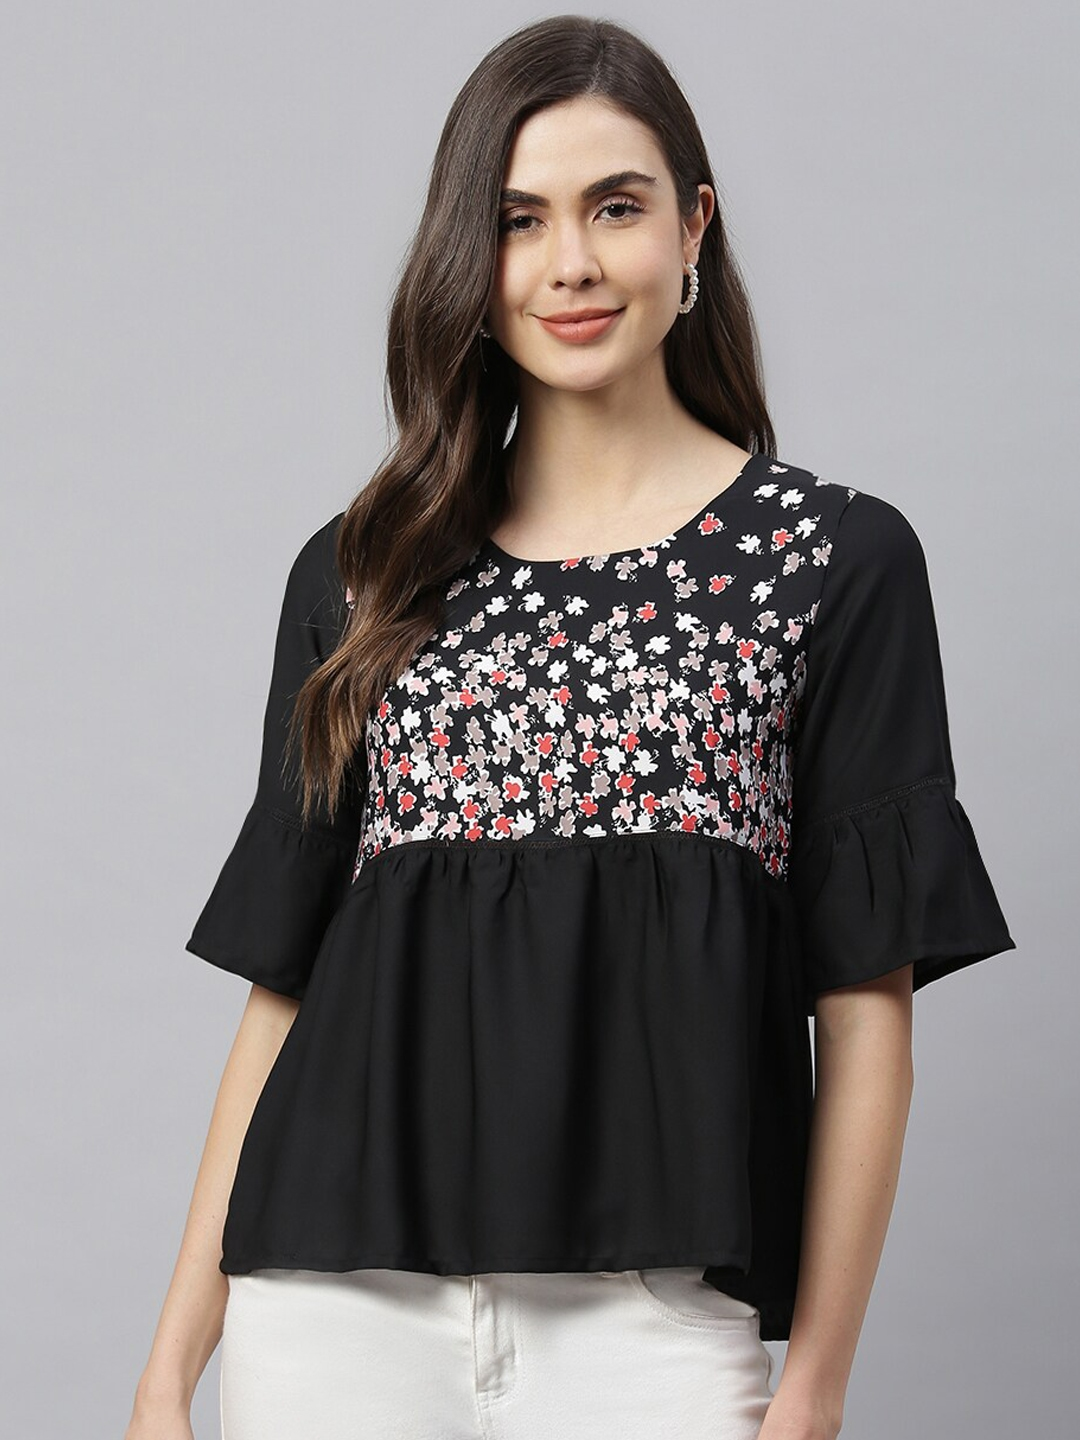 HK colours of fashion Black   White Floral Print Bell Sleeves Top